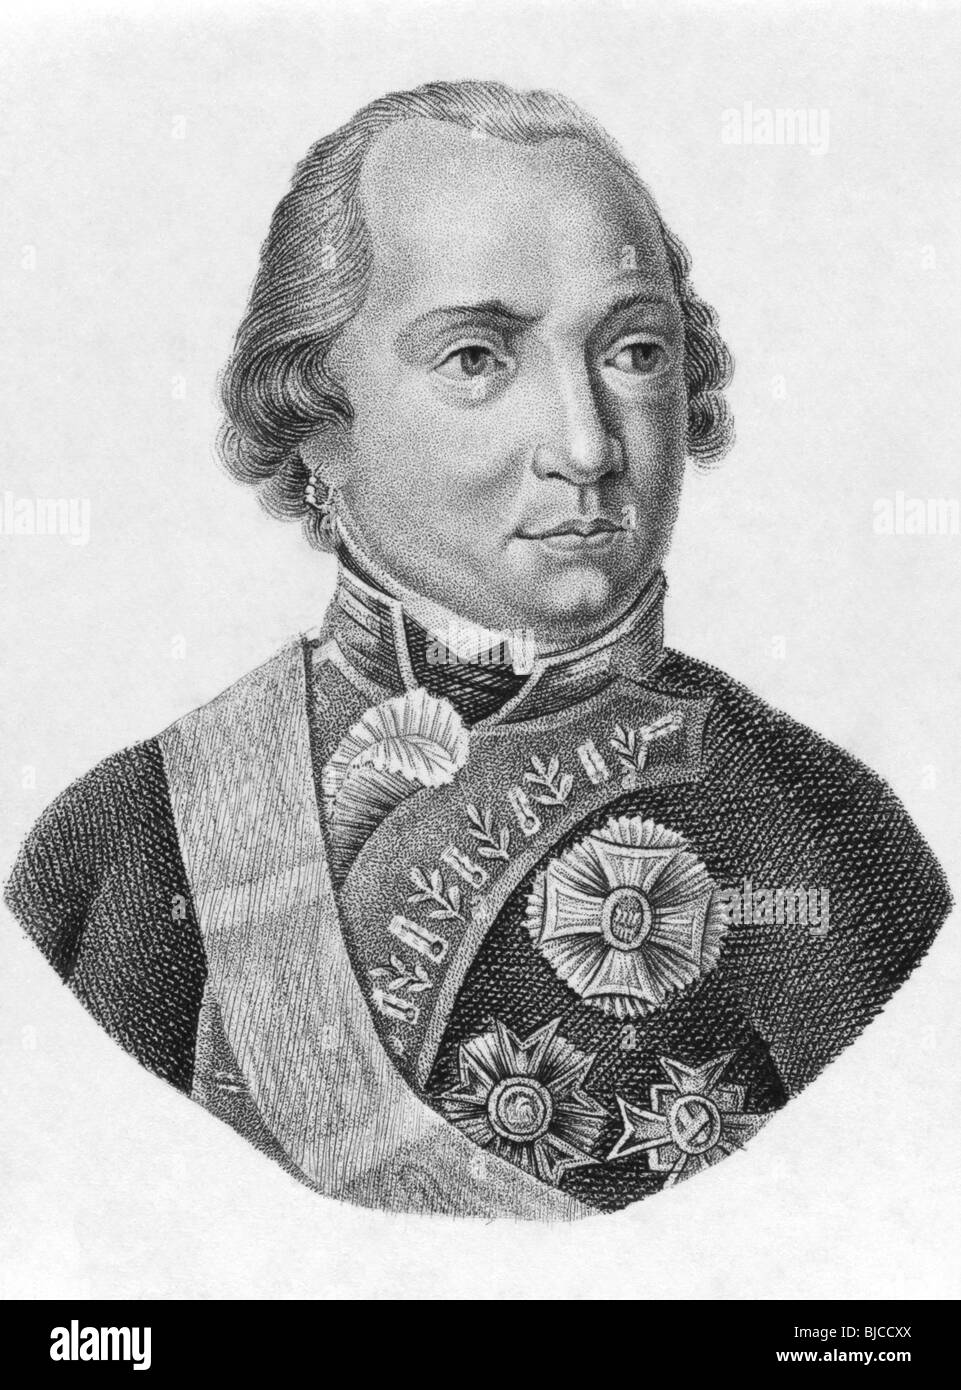 Maximilian I Joseph of Bavaria (1756-1825) on engraving from the 1800s. King of Bavaria during 1806-1825. - Stock Image